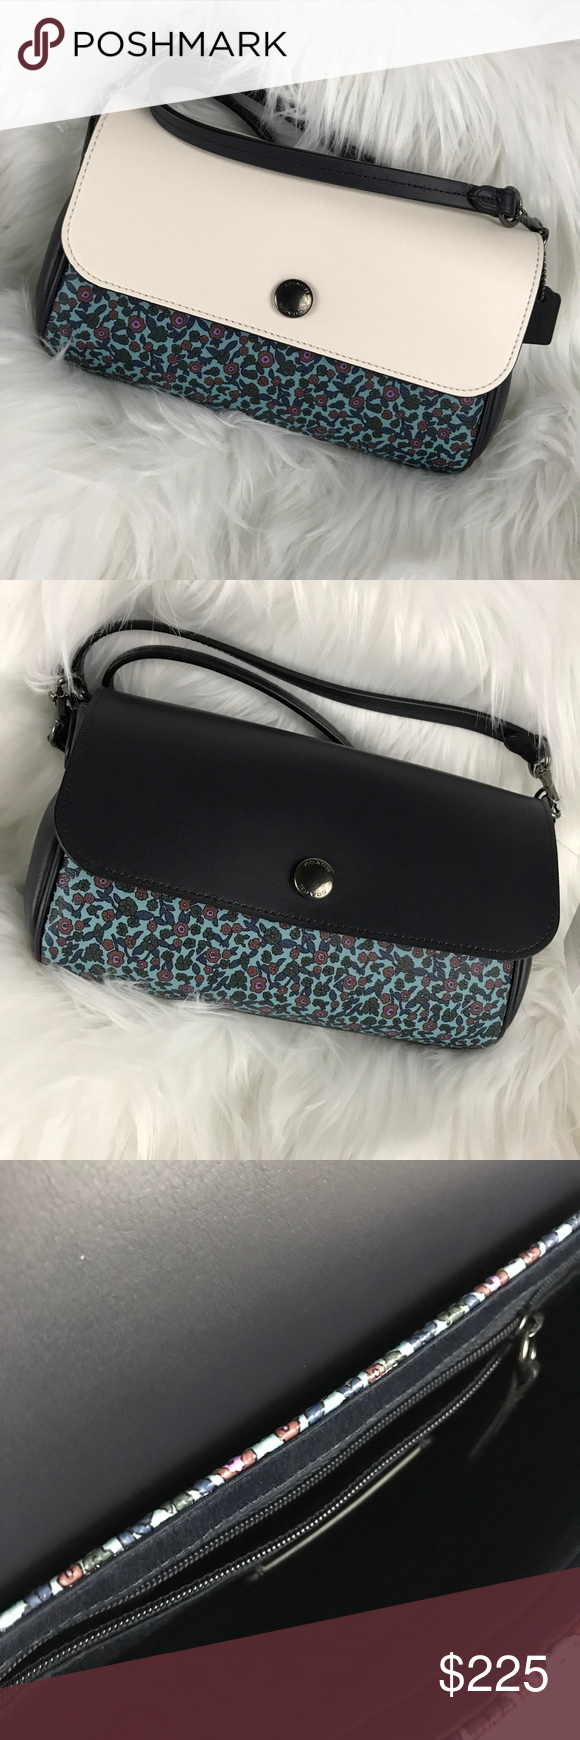 """Coach Black, Cream Floral reversible Crossbody Bag This Authentic Crossbody black and cream floral print Coach Bag is extremely versatile with a reversible cream or black snap over cover with a floral pattern base. Removable Crossbody strap and it becomes a clutch bag. #0429.    📐Measurements & Information 📐  Snap closure Drop length approx 22""""  Removable Crossbody strap 1 Interior slide pocket  1 Interior zipper pocket Purchased directly from Coach and I have receipt.  Authentic black and cre"""